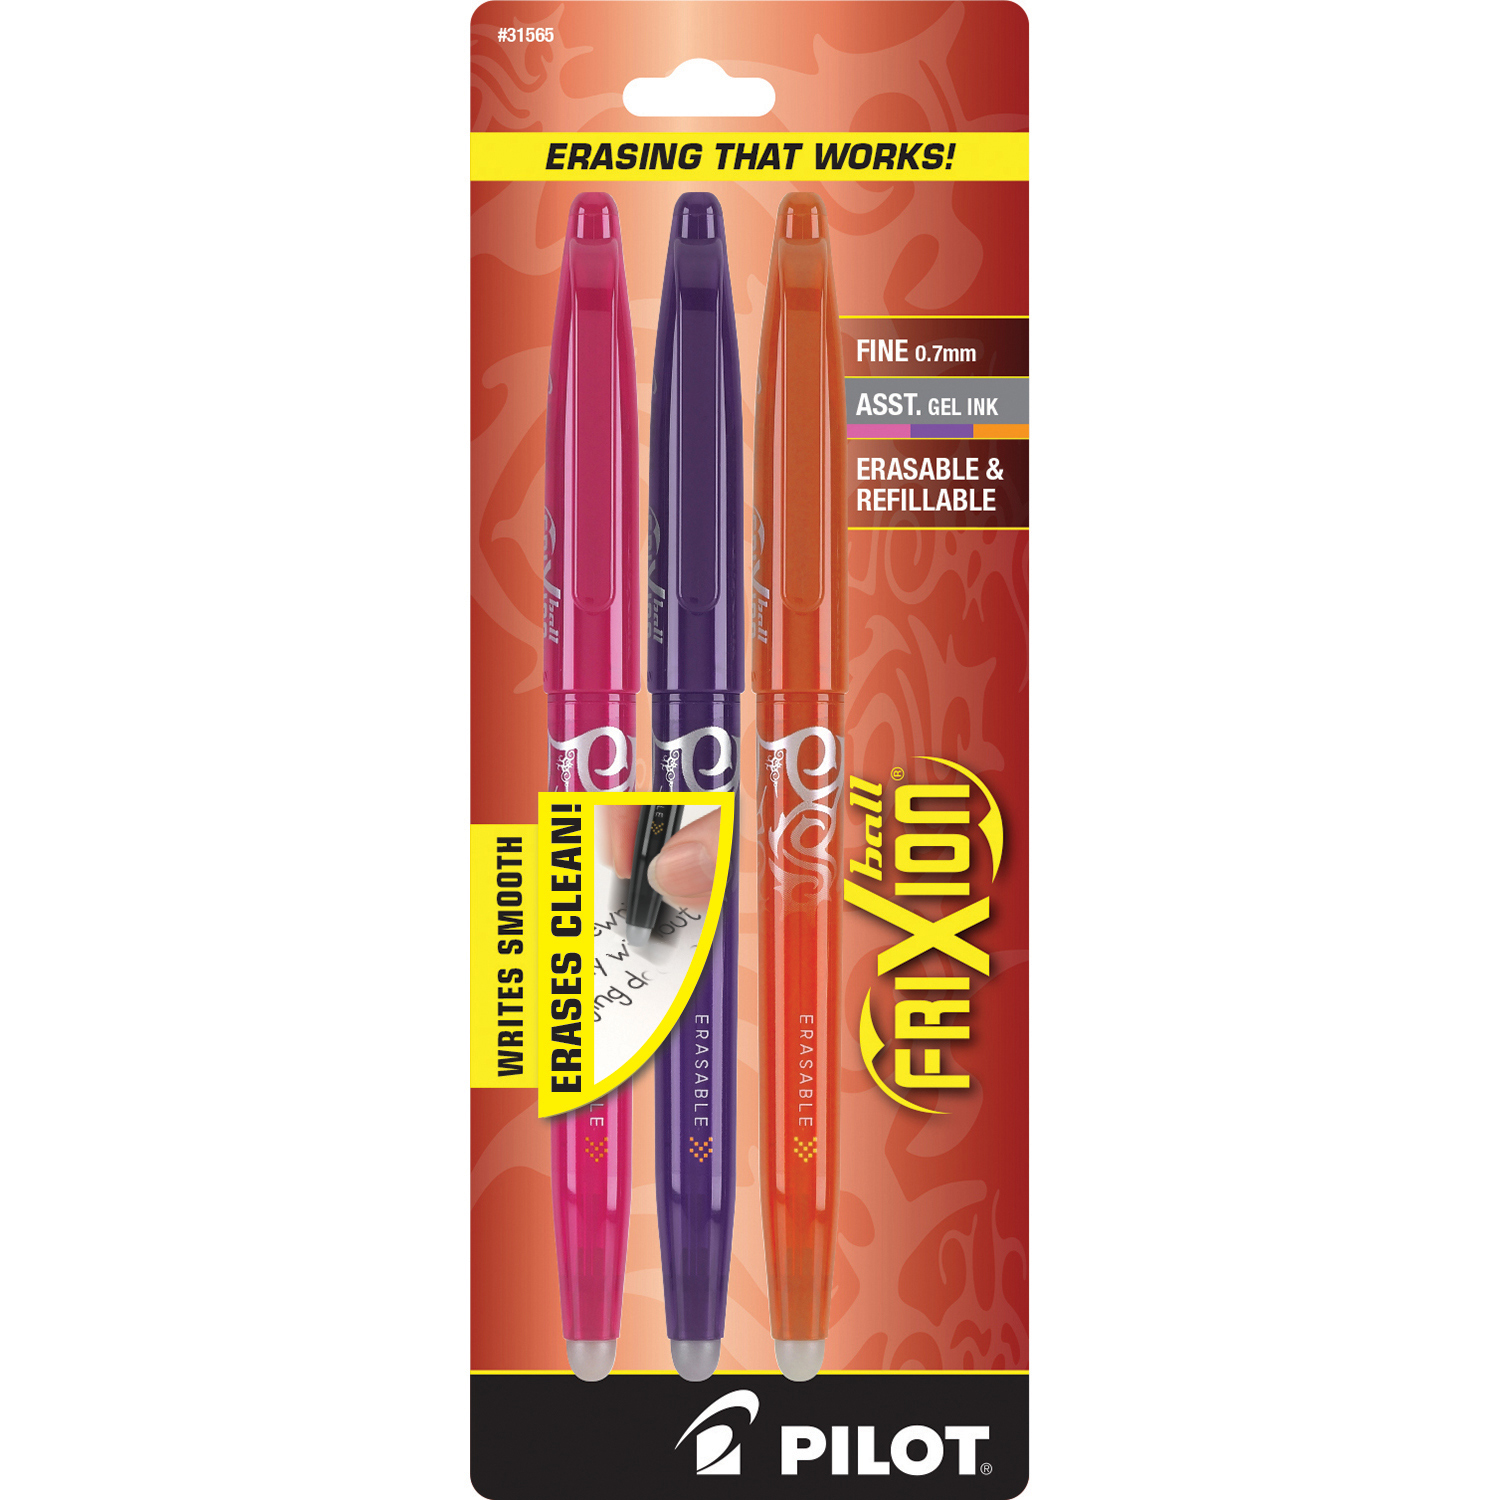 Pilot Frixion Erasable Gel Pen Pink/Orn/Purpl